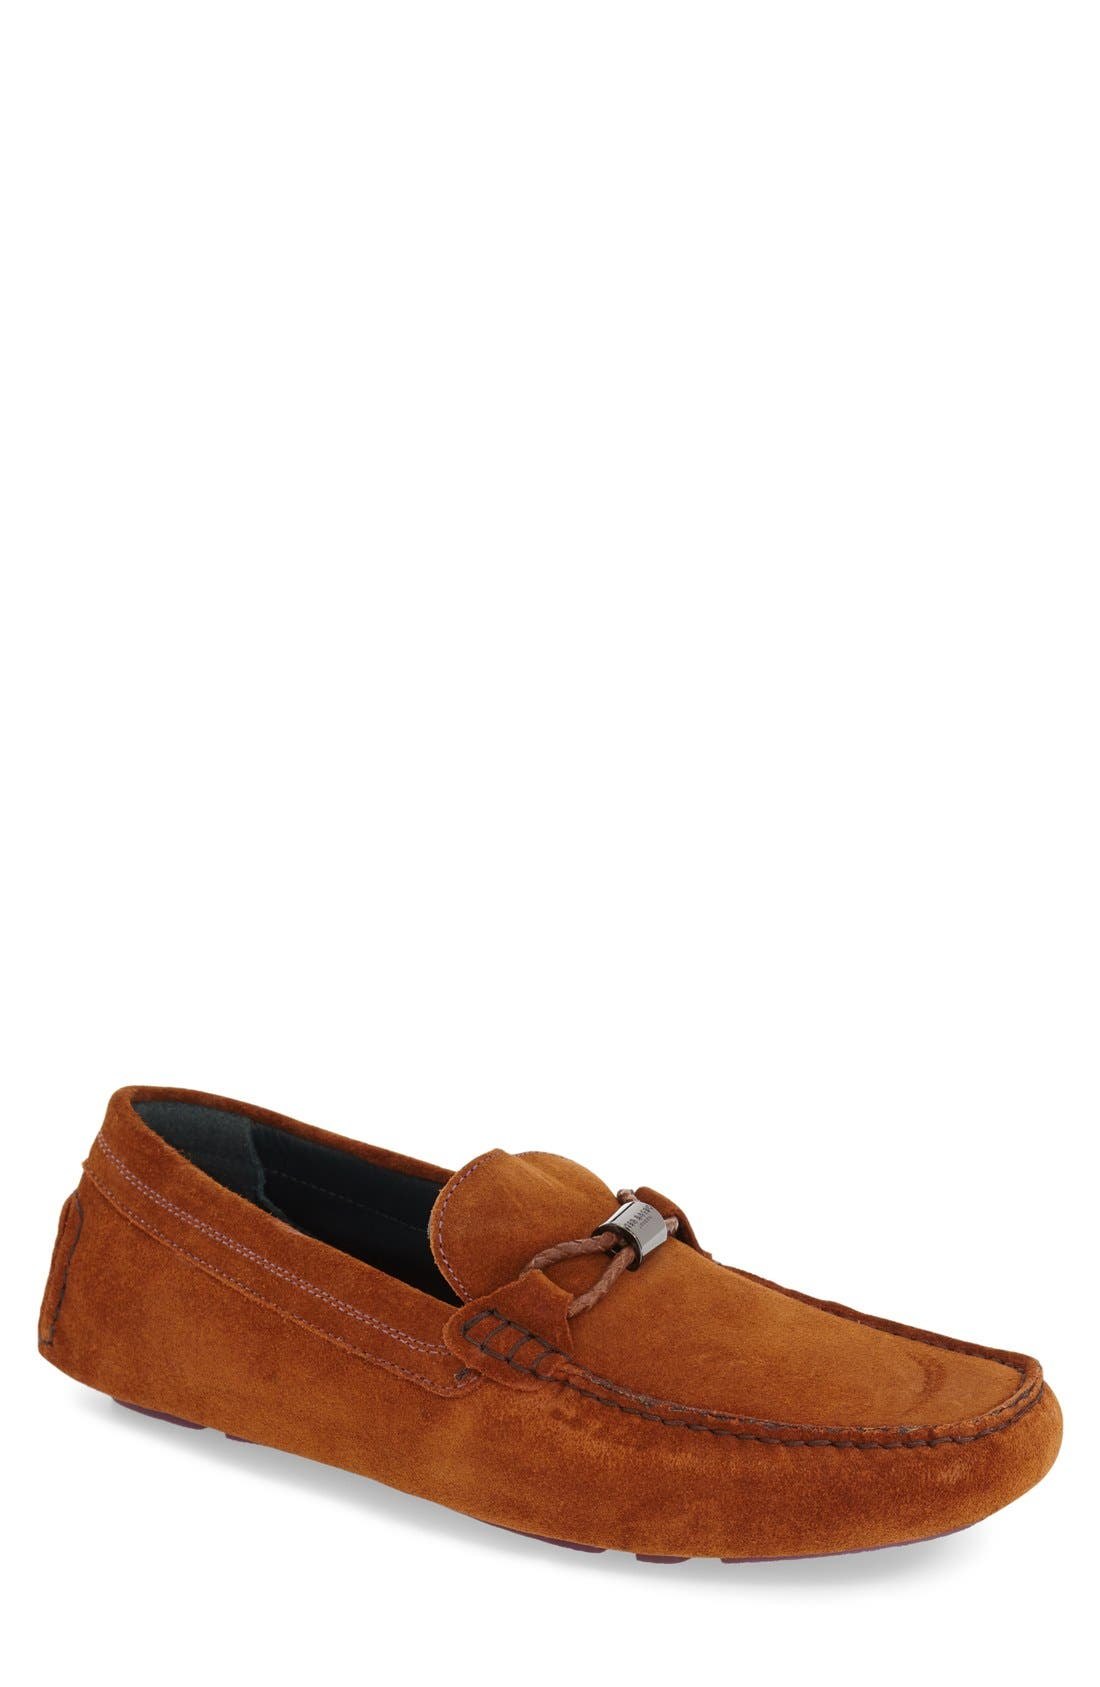 'Carlsun 2' Driving Shoe,                         Main,                         color, Tan Suede